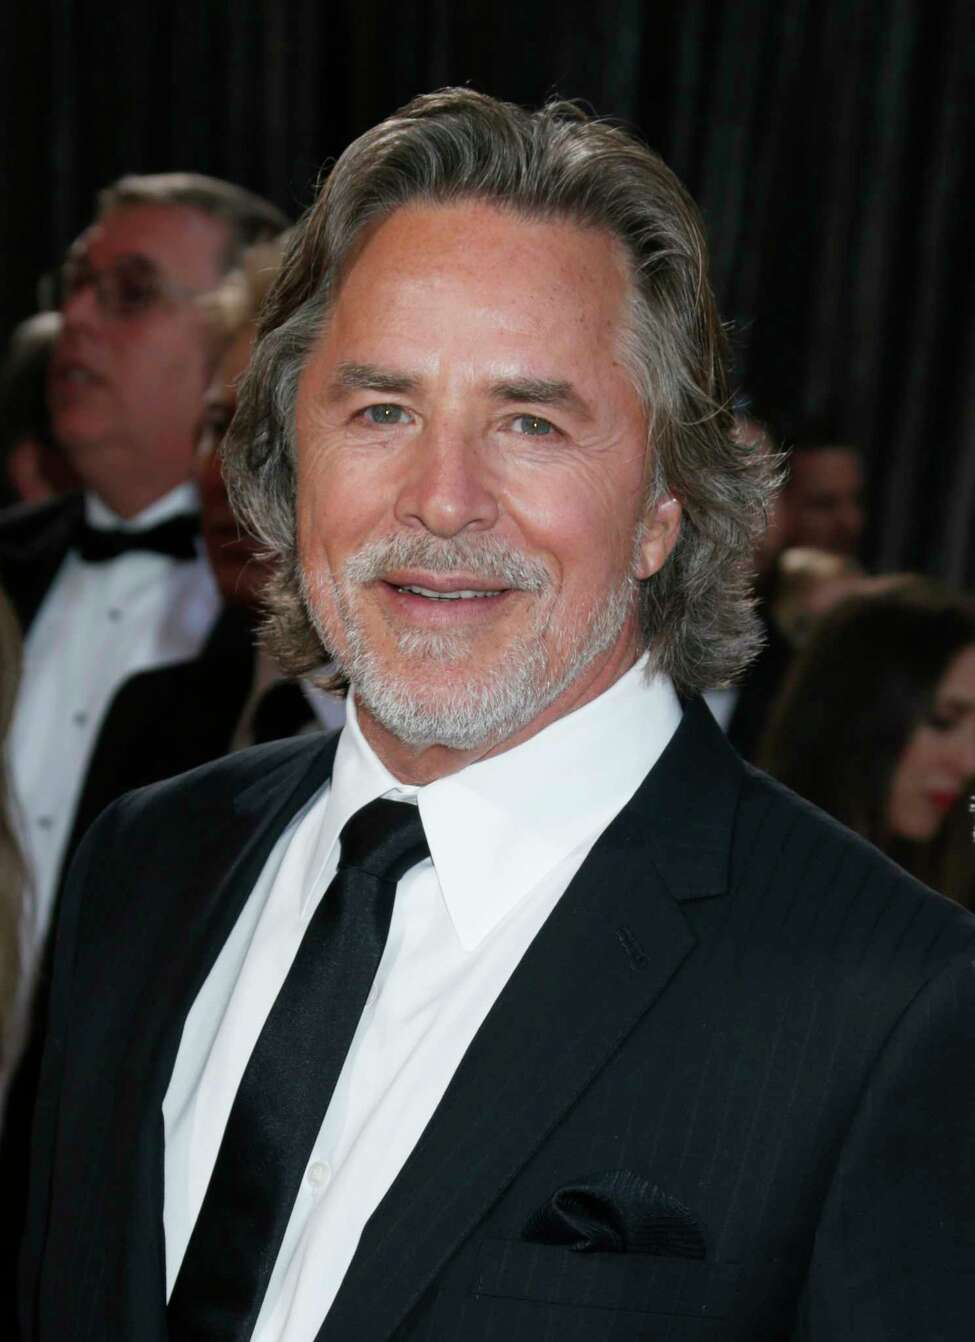 Actor Don Johnson arrives at the Oscars at the Dolby Theatre on Sunday Feb. 24, 2013, in Los Angeles. (Photo by Todd Williamson/Invision/AP)